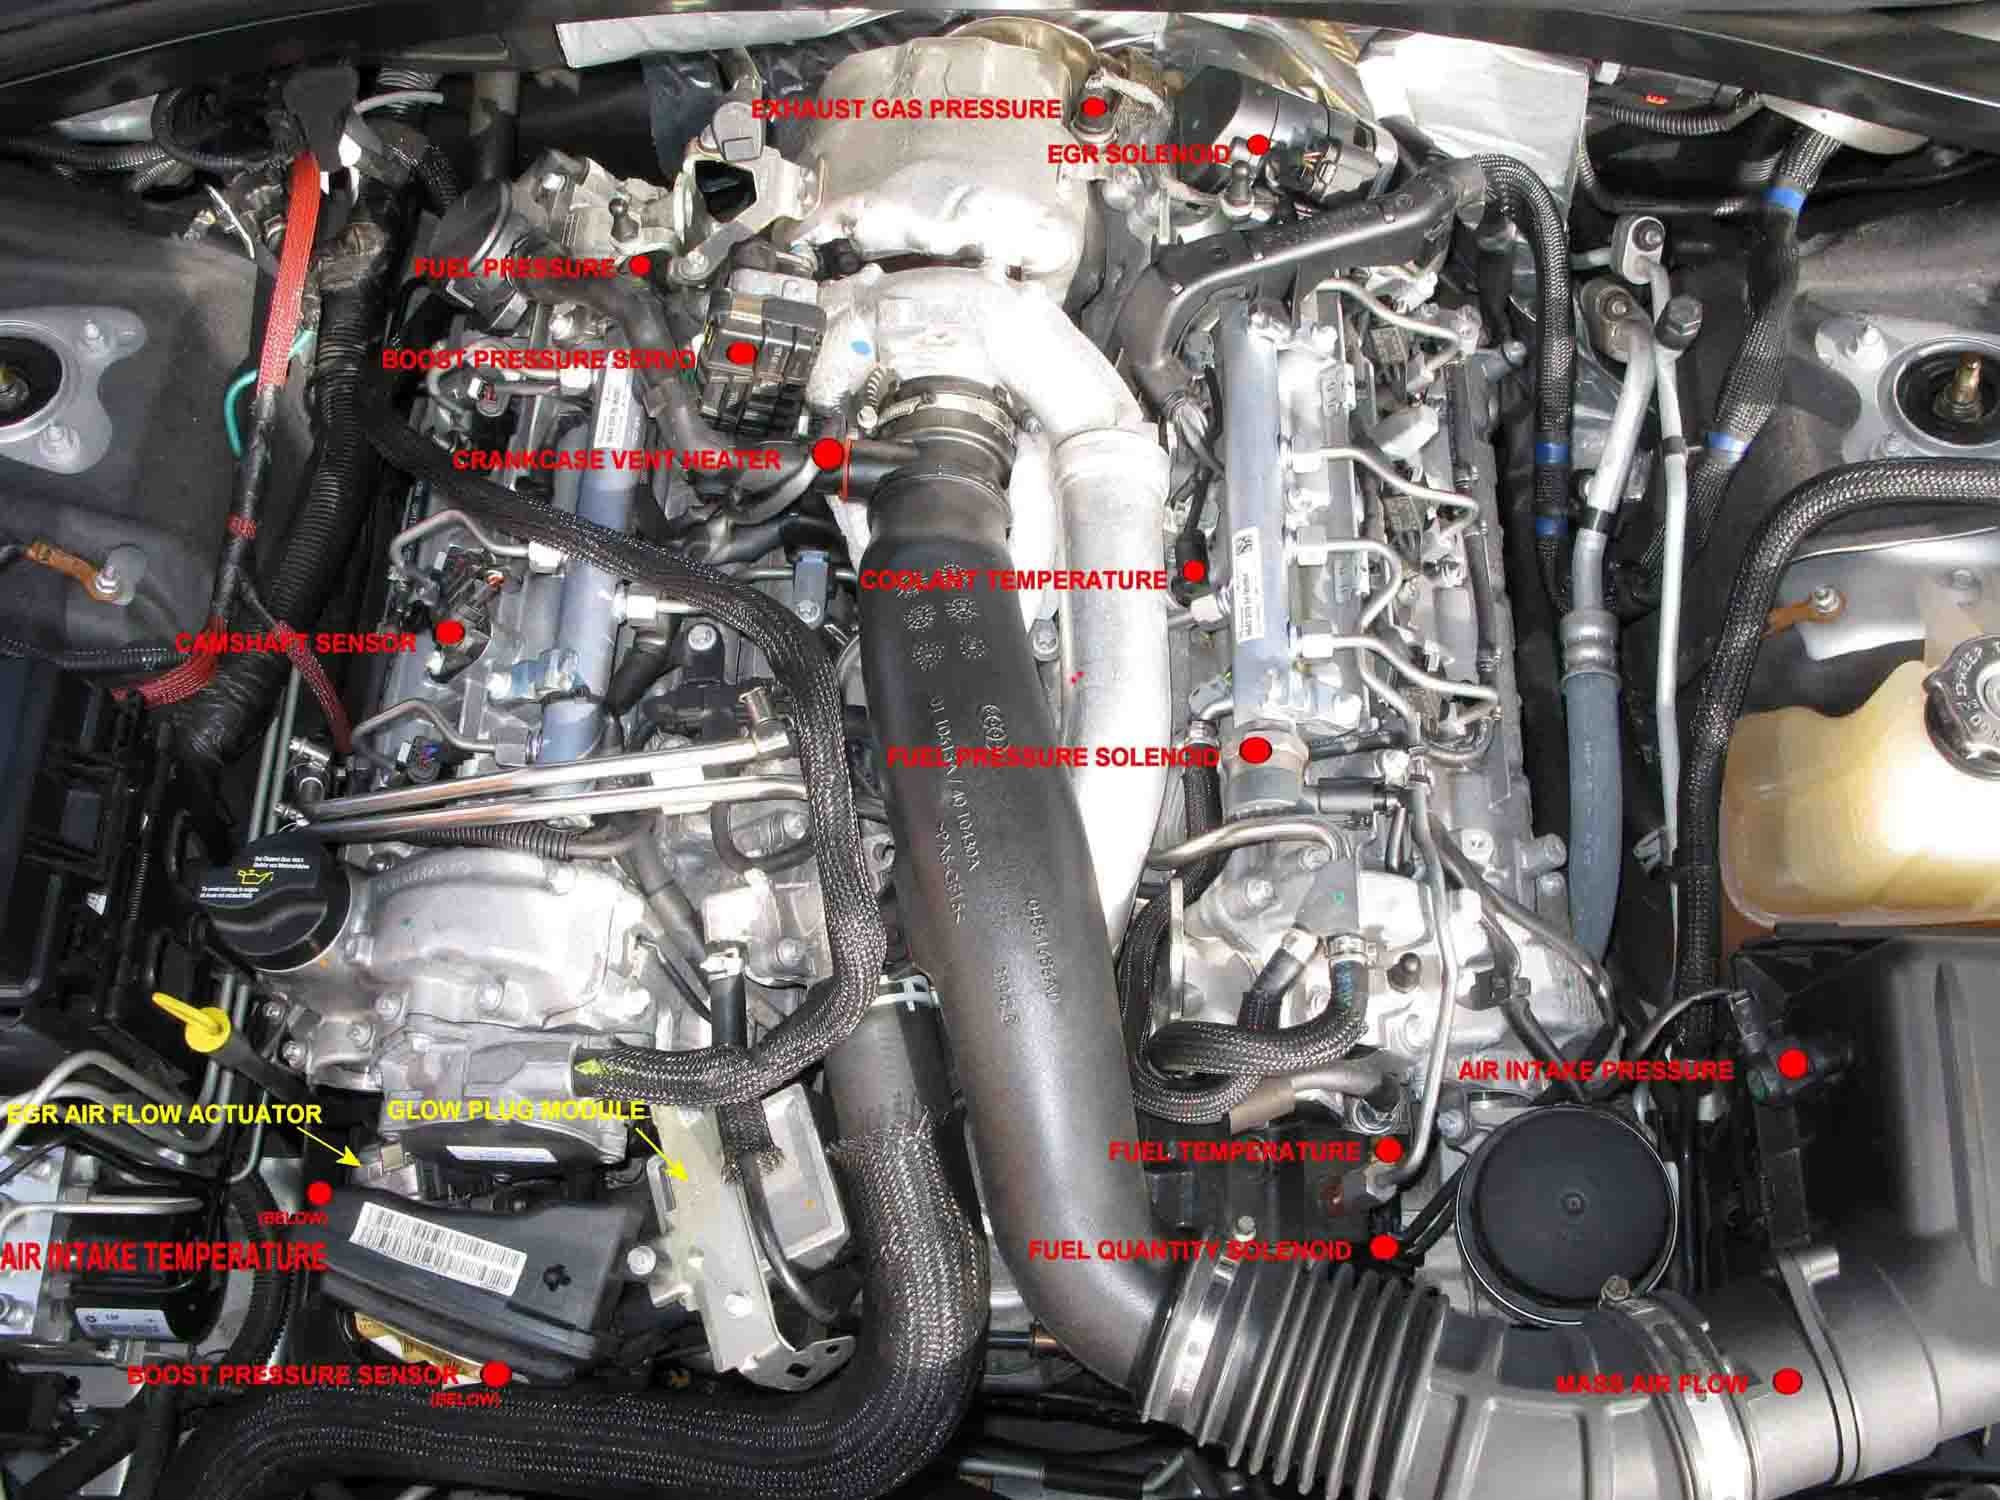 D Overheating Issues Something Else in addition Chevrolet Cobalt also Dodge Shadow moreover Picture additionally Iistd Knock Sensor. on ford 4 6 manifold problems